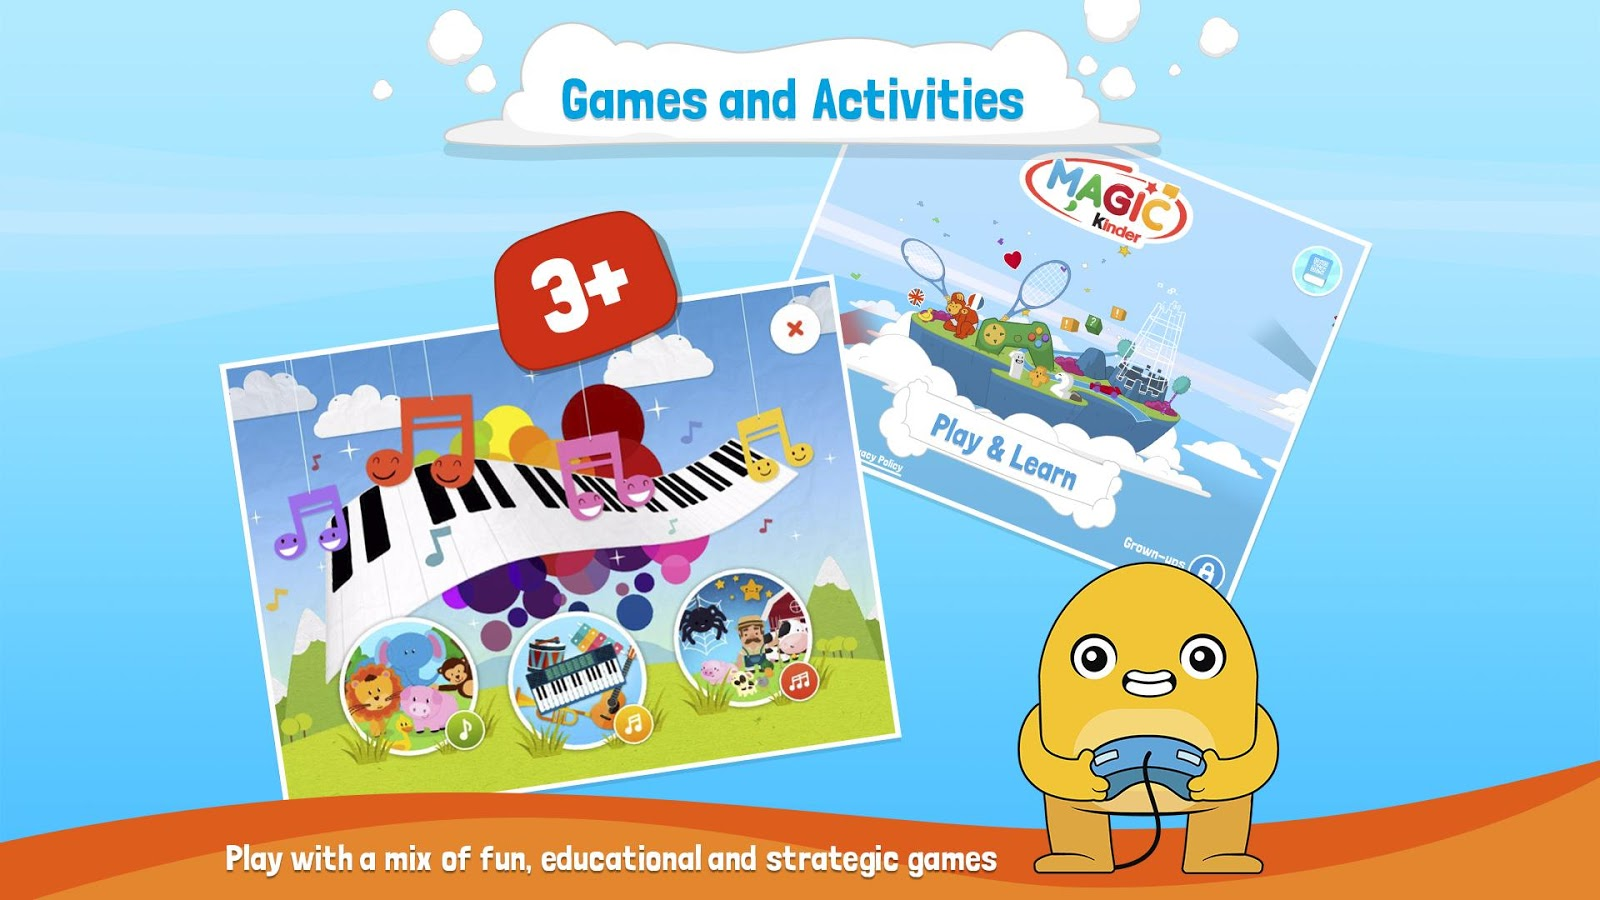 Magic kinder official app free kids games android apps on google play - Kinderapps gratis ...